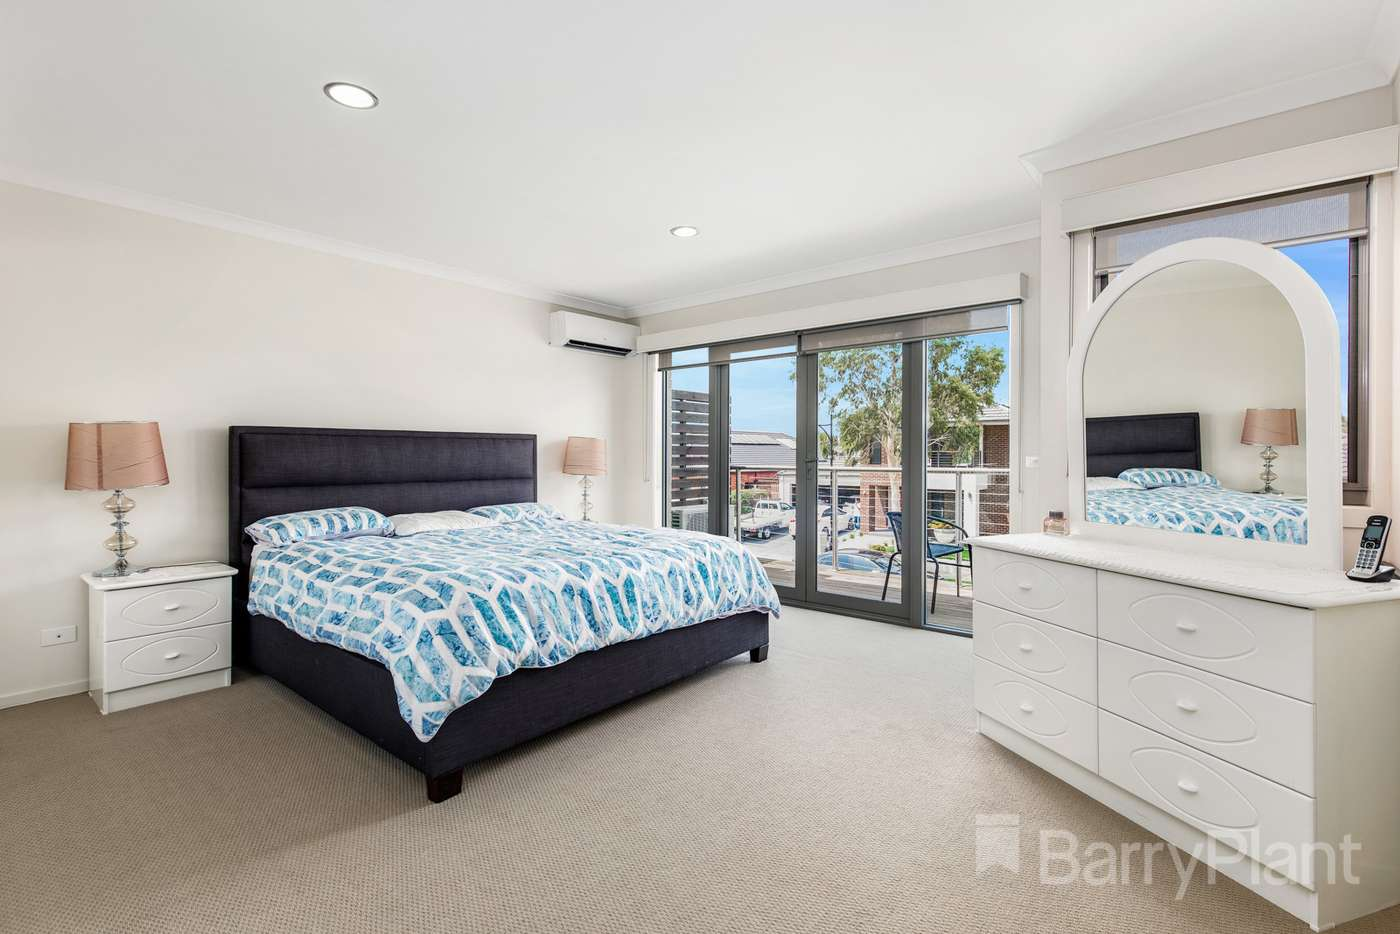 Sixth view of Homely house listing, 74 Rippleside Terrace, Tarneit VIC 3029